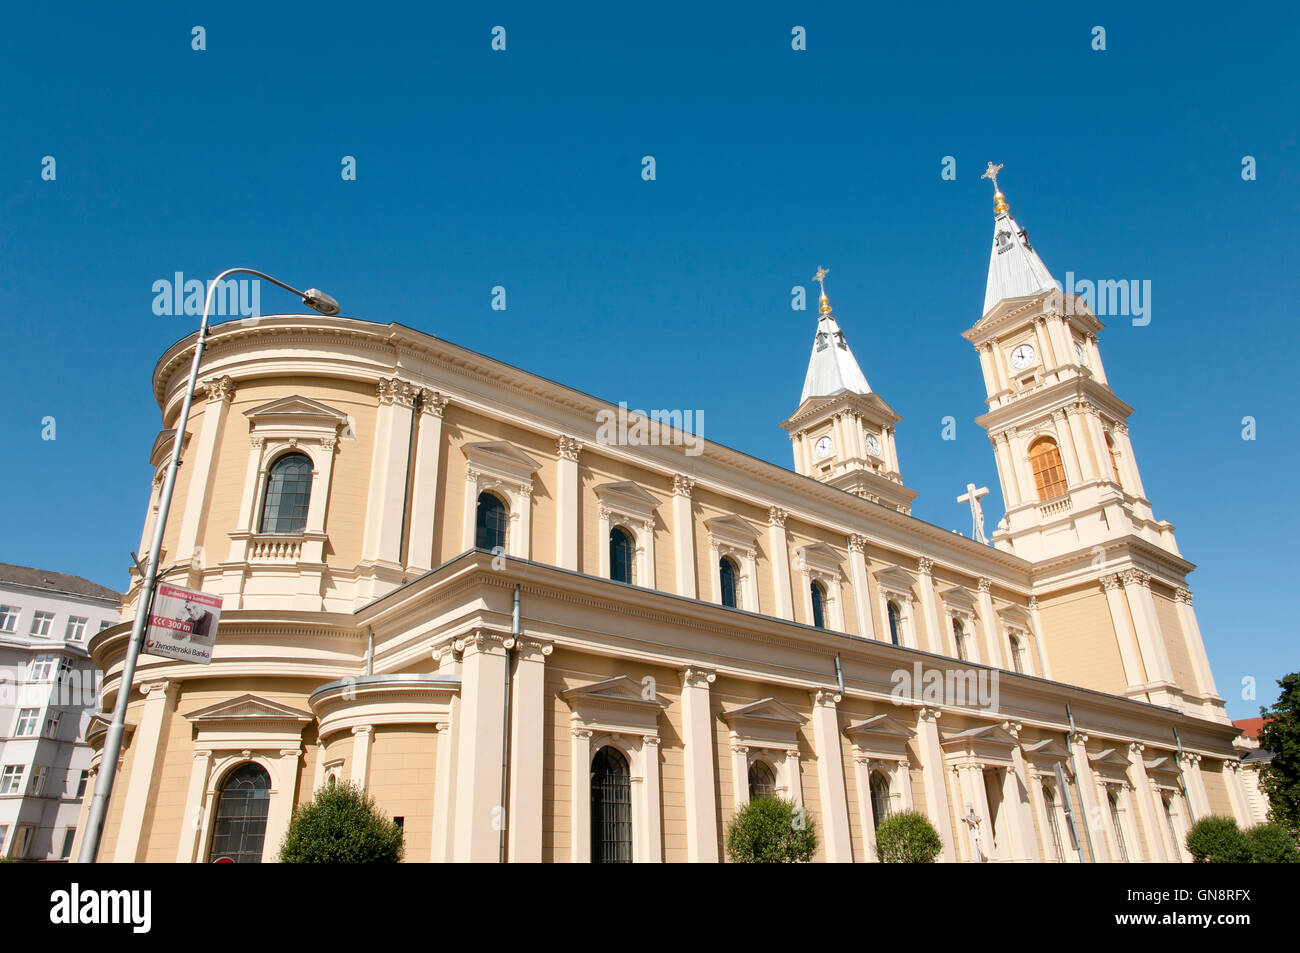 Cathedral of the Divine Saviour - Ostrava - Czech Republic - Stock Image